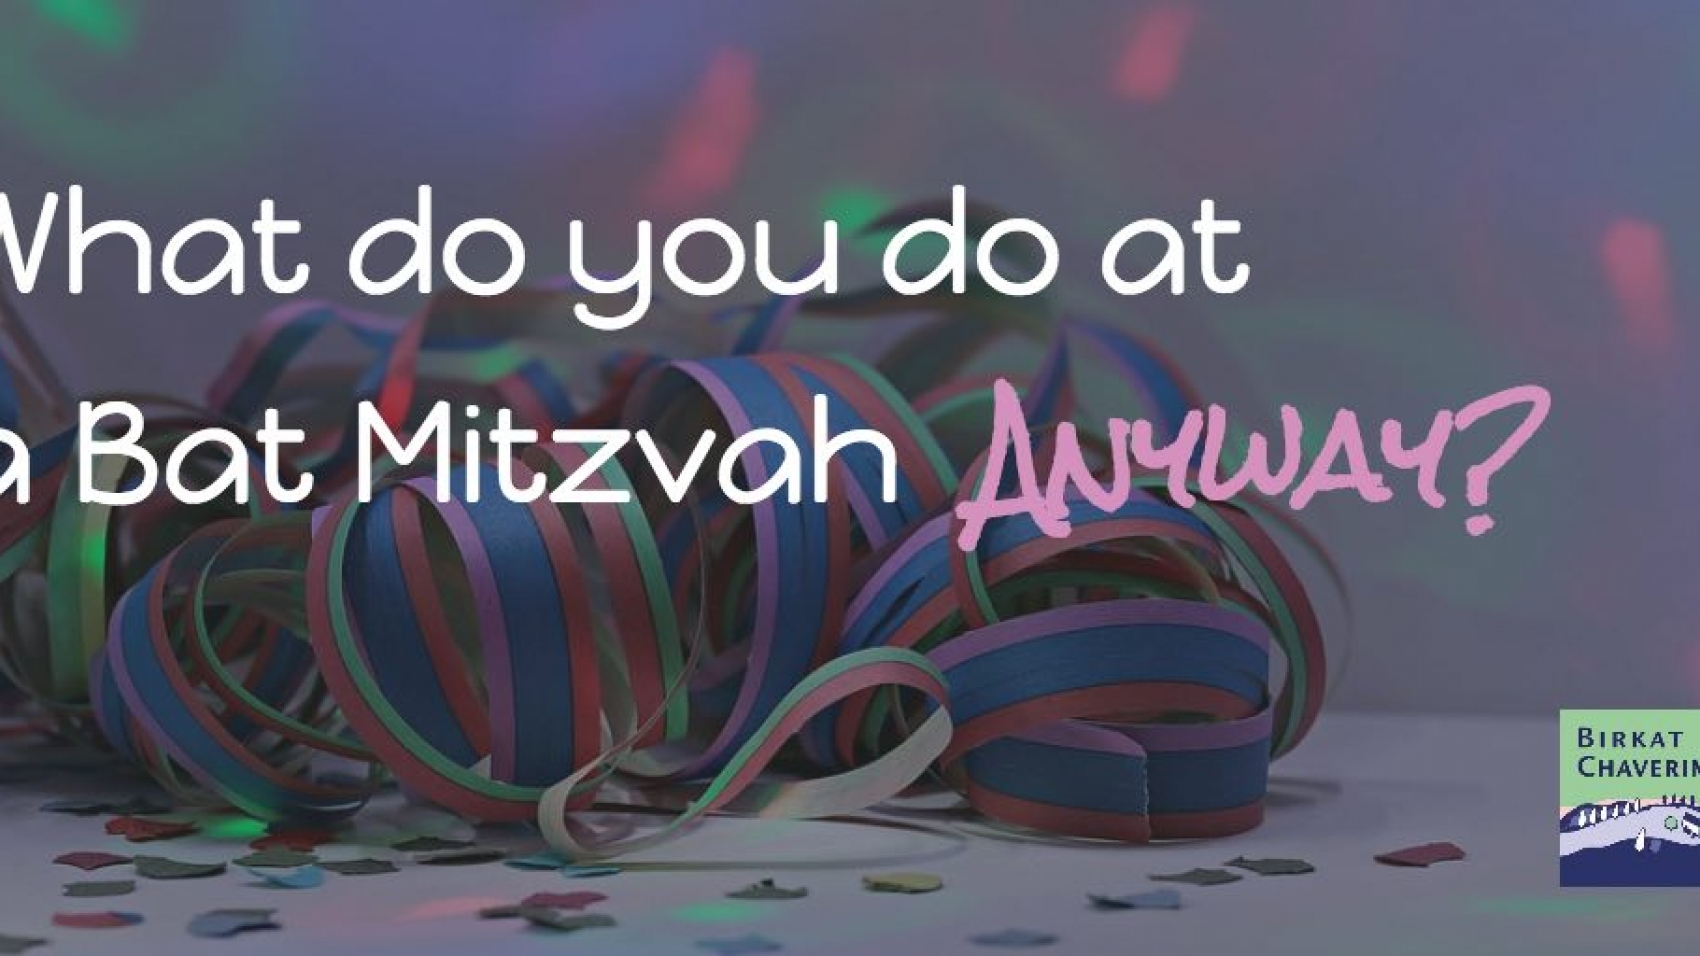 Streamers and confetti picture as a background for text What do you do at a Bat Mitzvah anyway